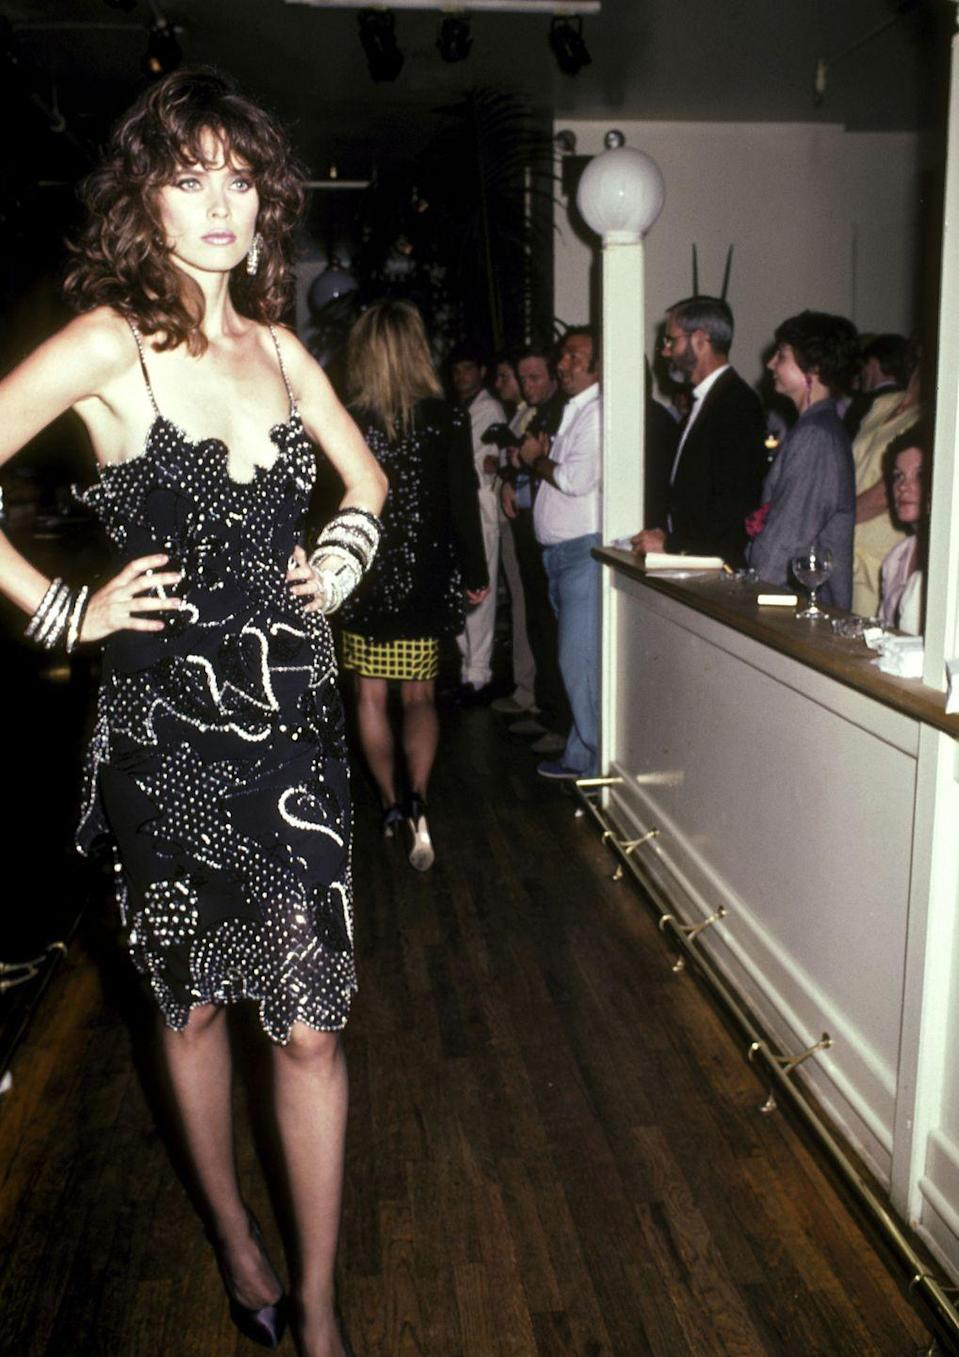 <p>Carol Alt was the original flashy girl from Flushing. The Queens native dominated the modeling world in the '80s, garnering contracts with CoverGirl, Givenchy, Hanes, Diet Pepsi, and, yes, even General Motors. She also fronted many leading magazines, including the highly coveted <em>Sports Illustrated</em> Swimsuit Issue and <em>Harper's BAZAAR</em>. By the middle part of the decade, she tried her hand at acting, appearing in a number of films and television series. </p>